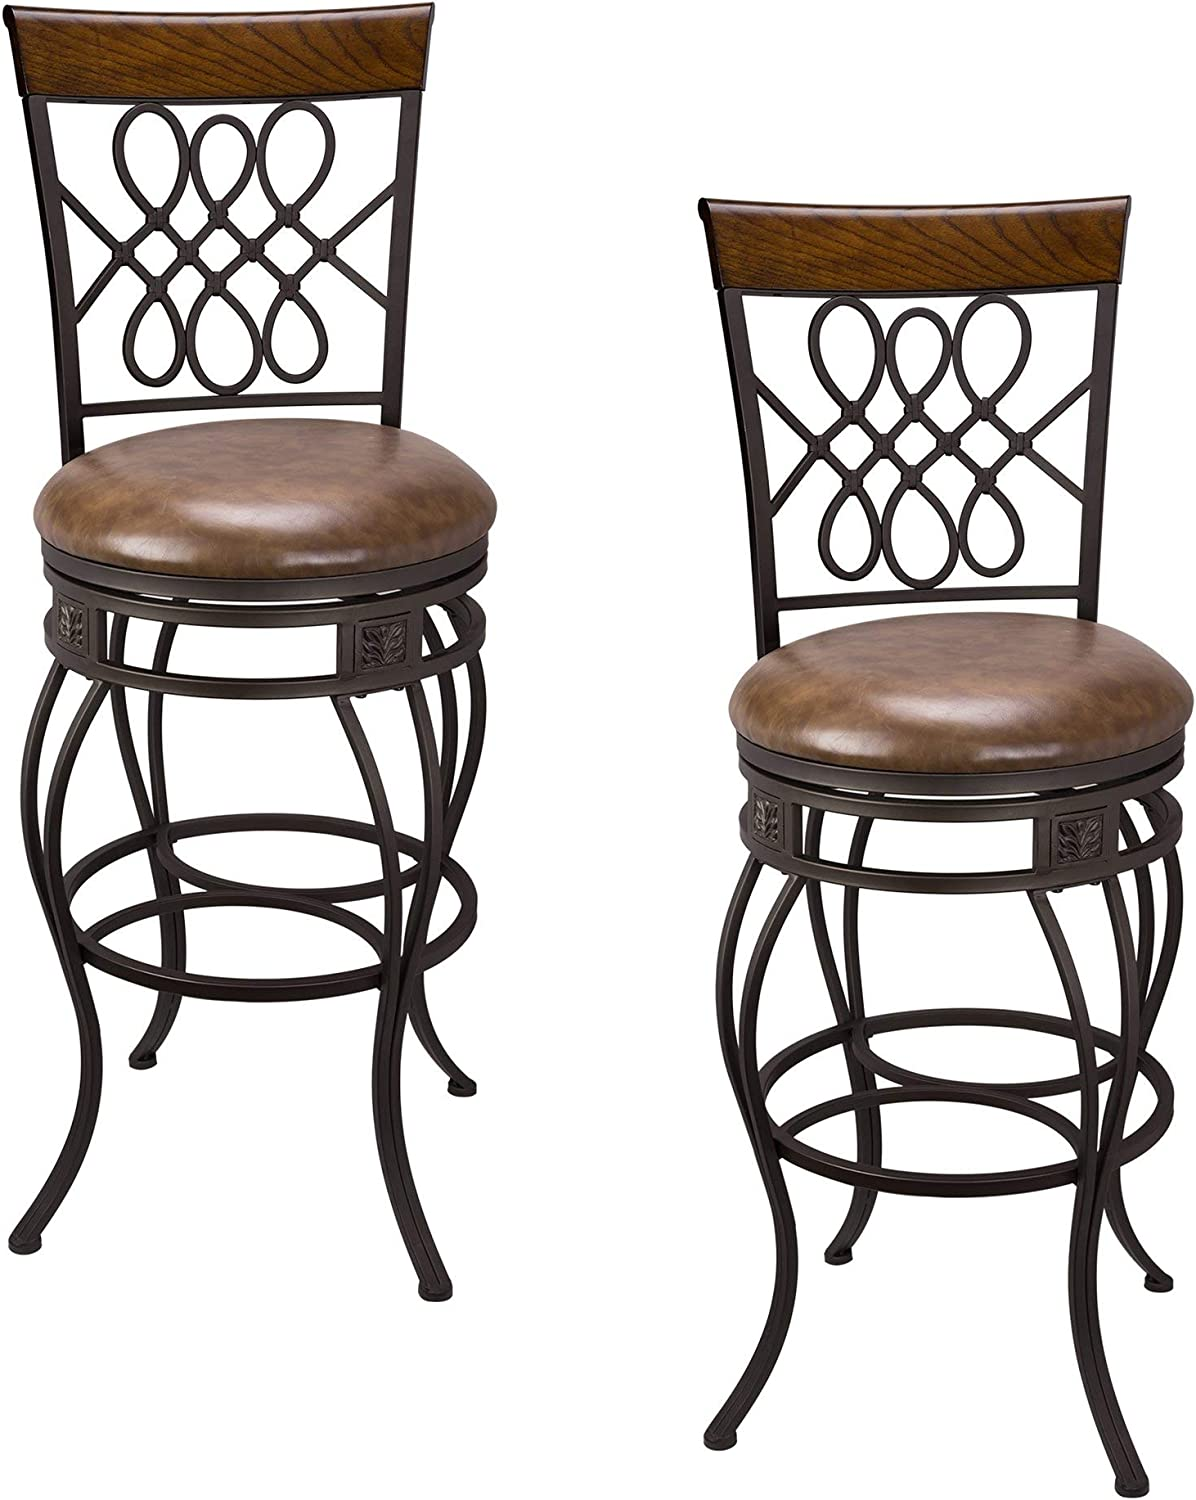 Kira Home Monarch I 30 Swivel Bar Stool Brown Leatherette Seat Cushion Scroll Backrest With Real Wood Accent Old Steel Finish Set Of 2 Furniture Decor Amazon Com